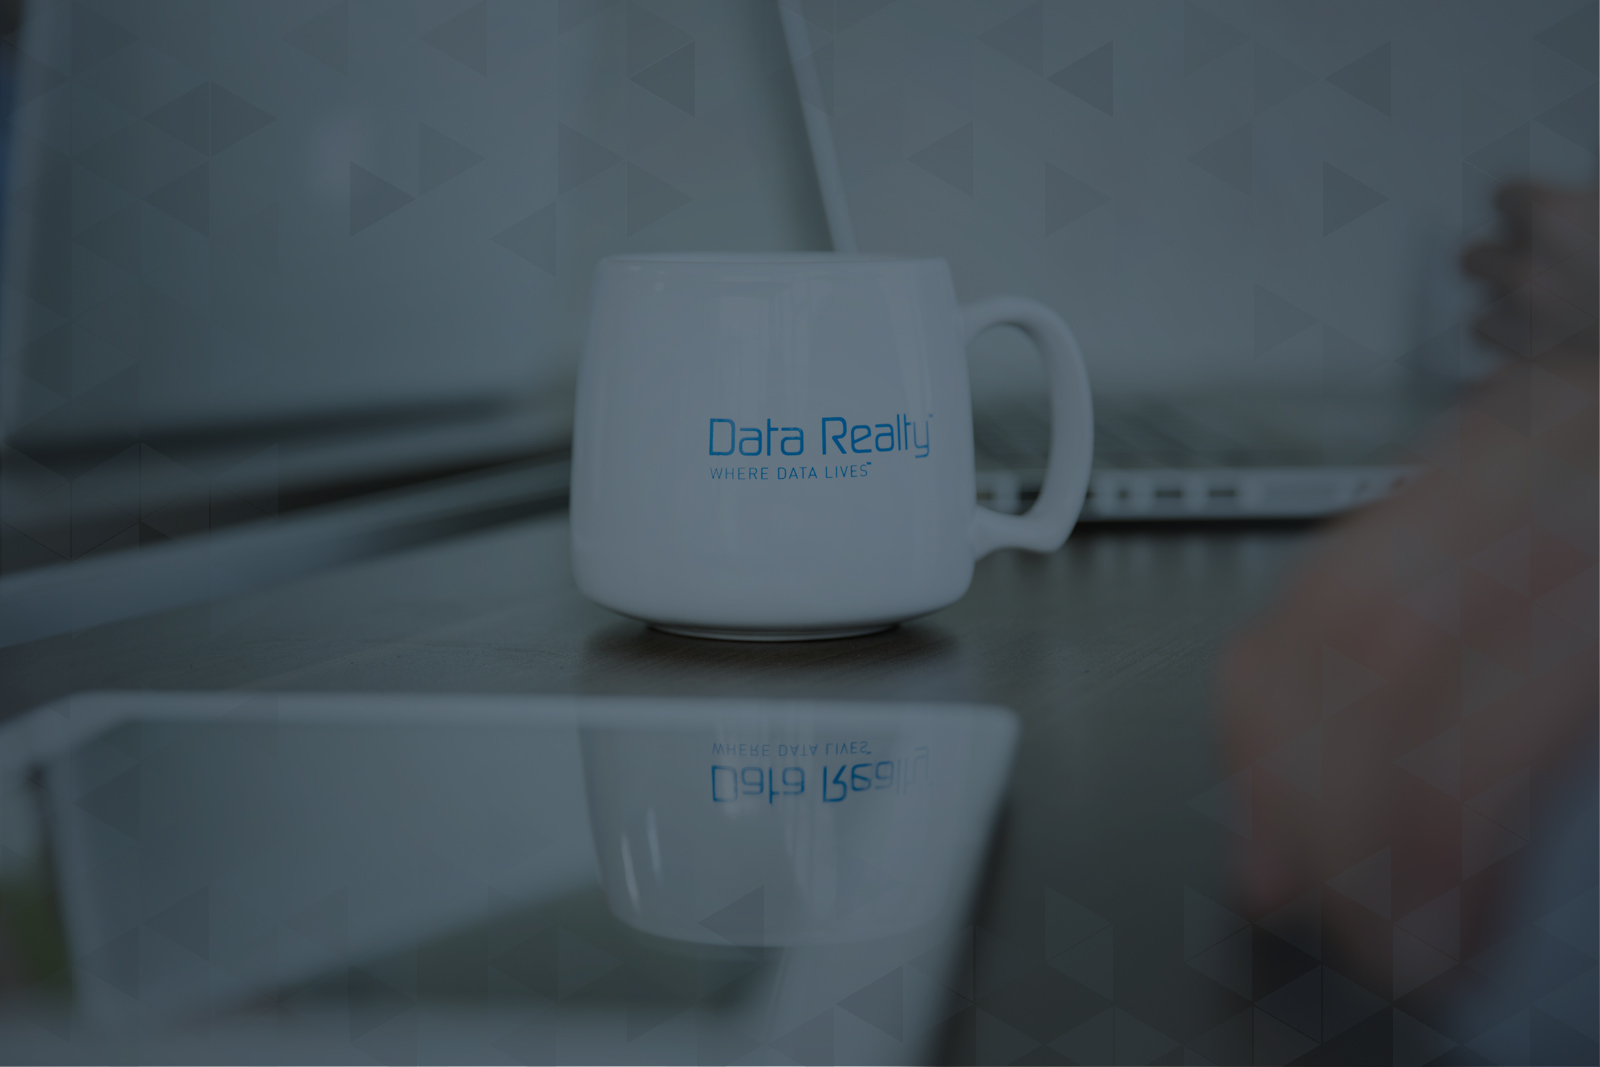 Data Realty mug surrounded by computer and tablet